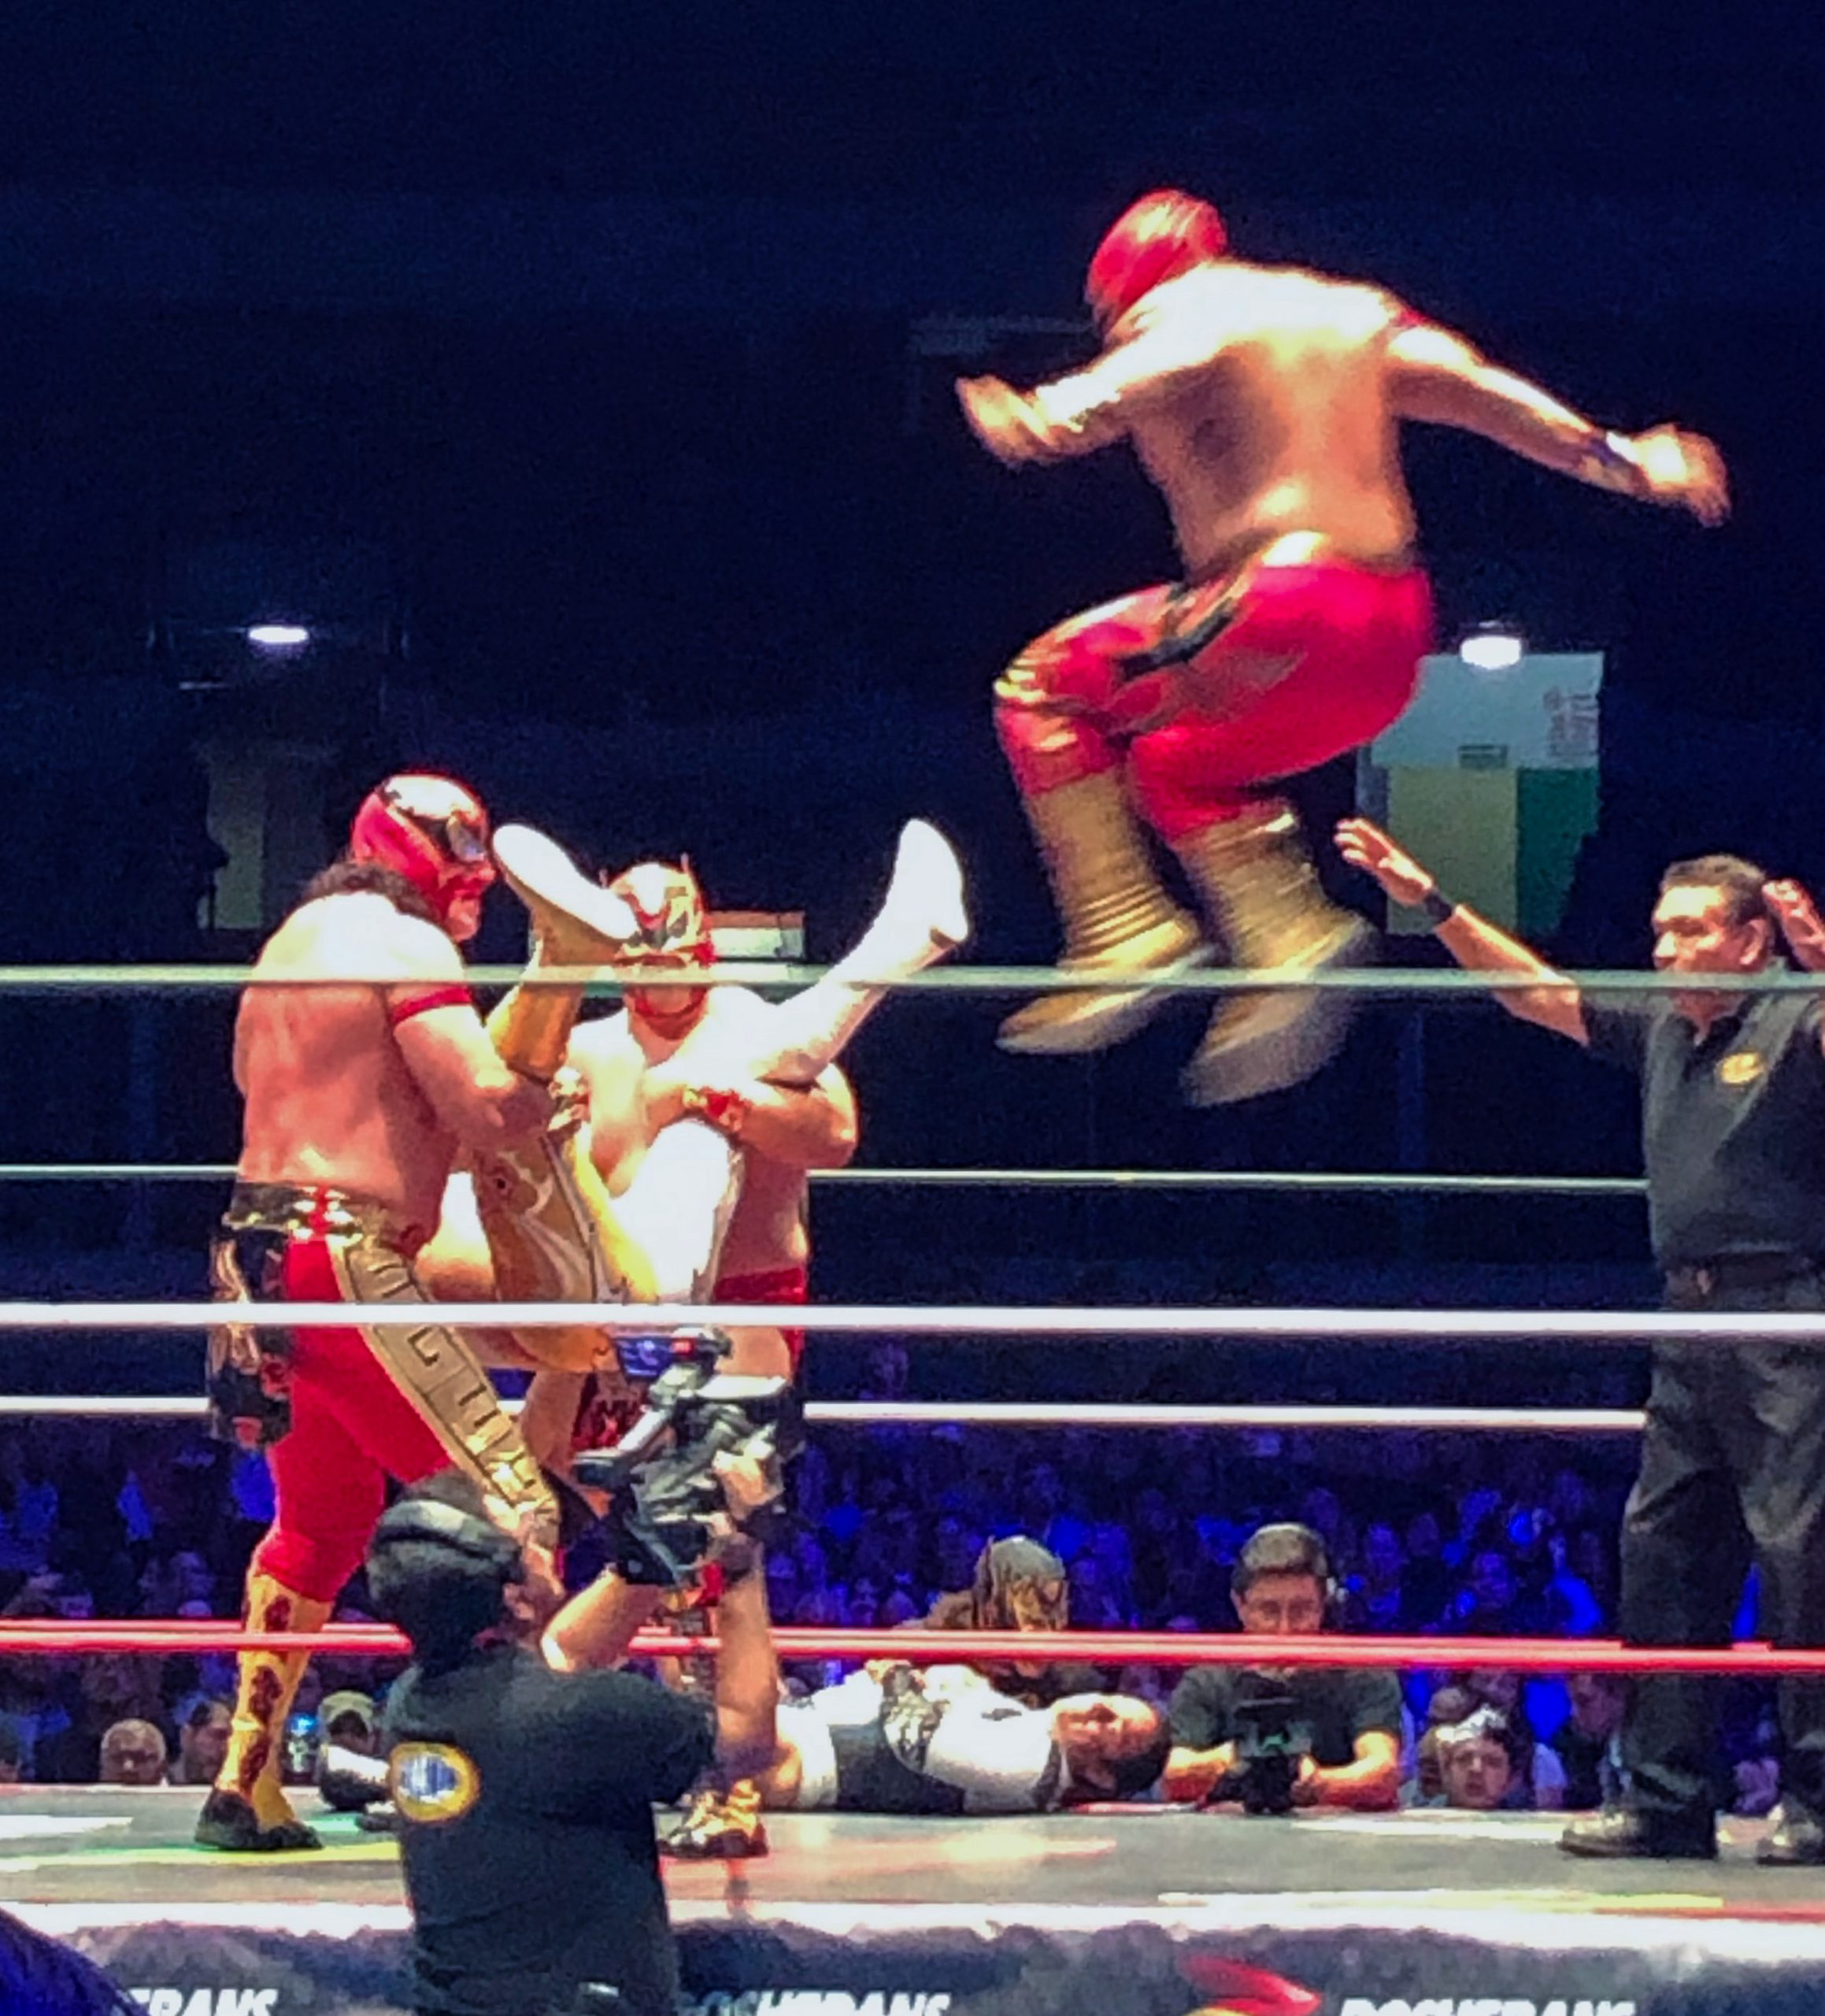 Luchador jumping onto opponent